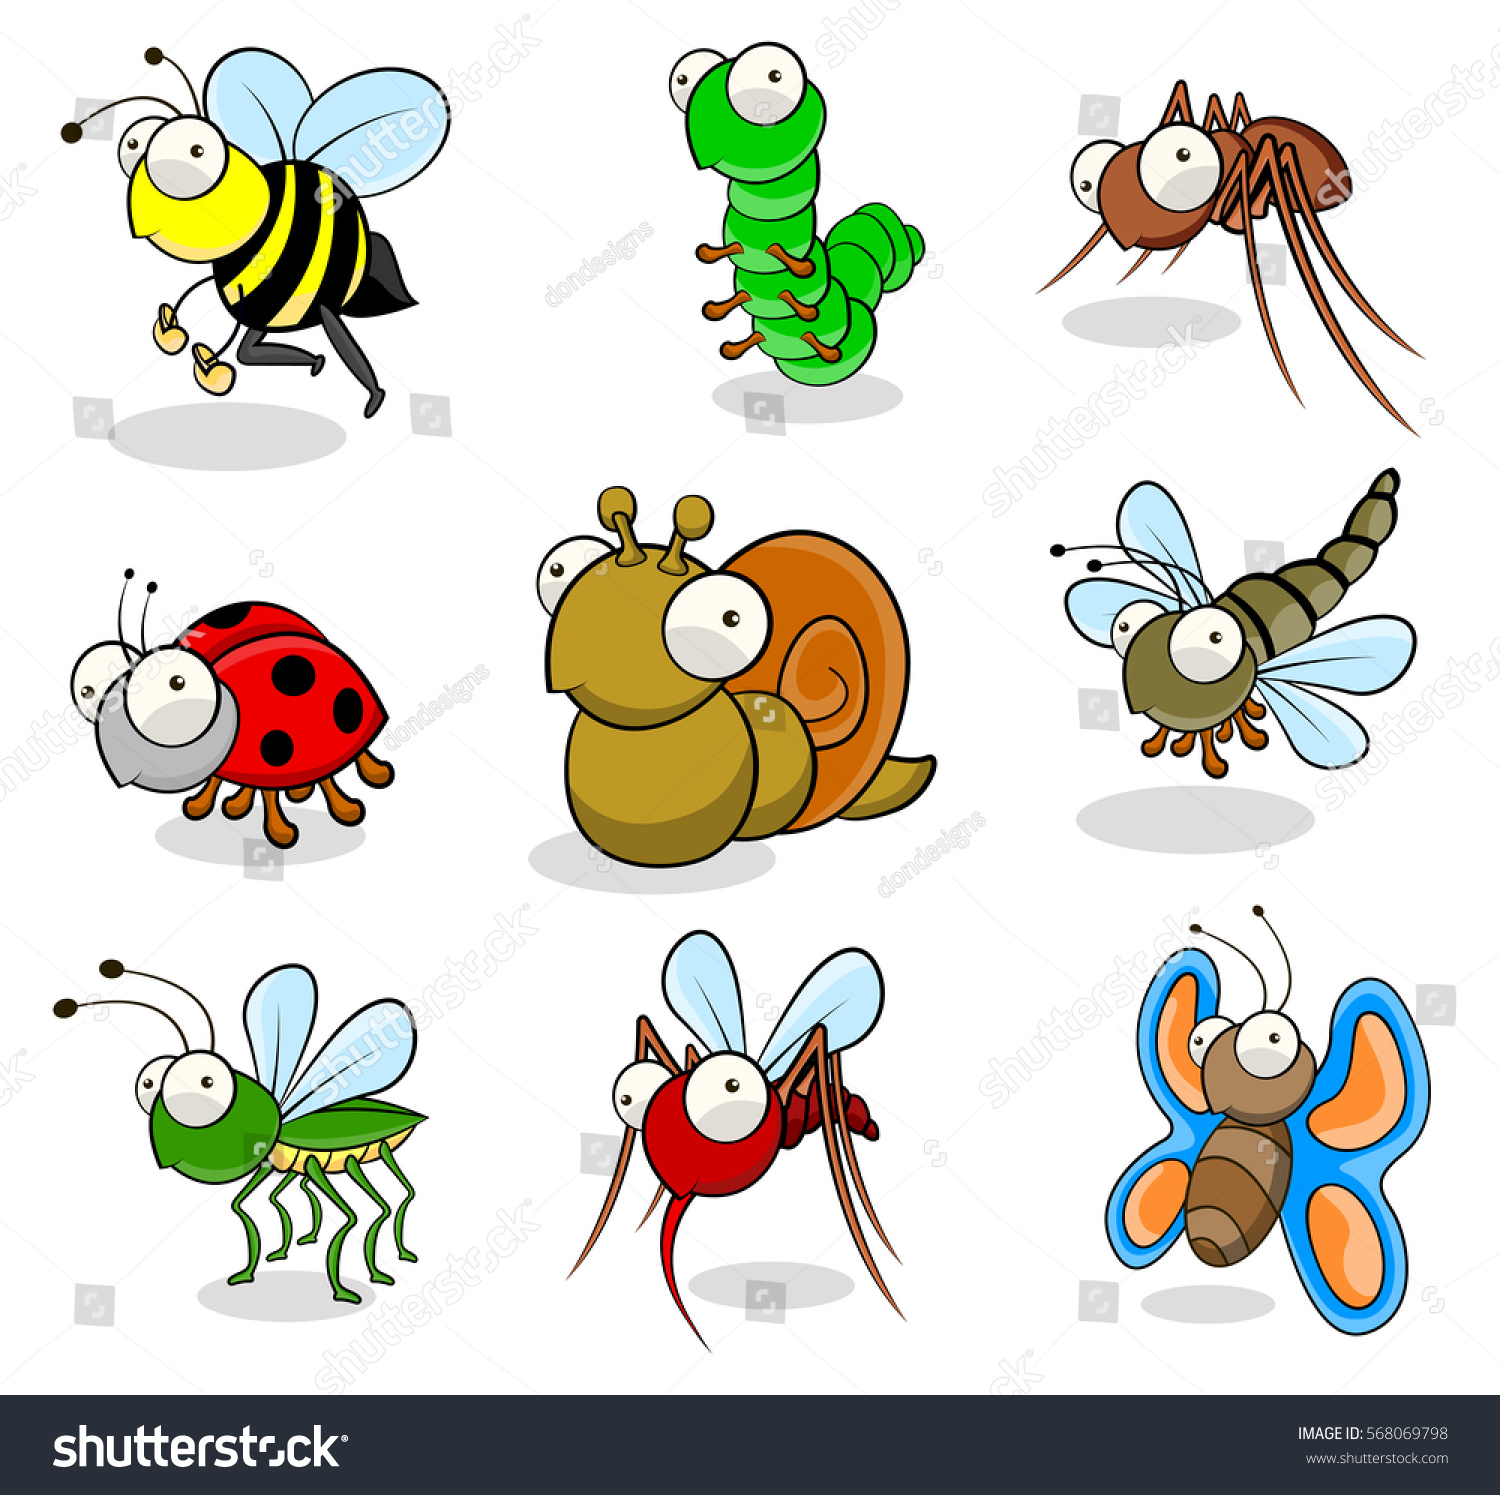 small insects cartoon drawings stock vector 568069798 shutterstock